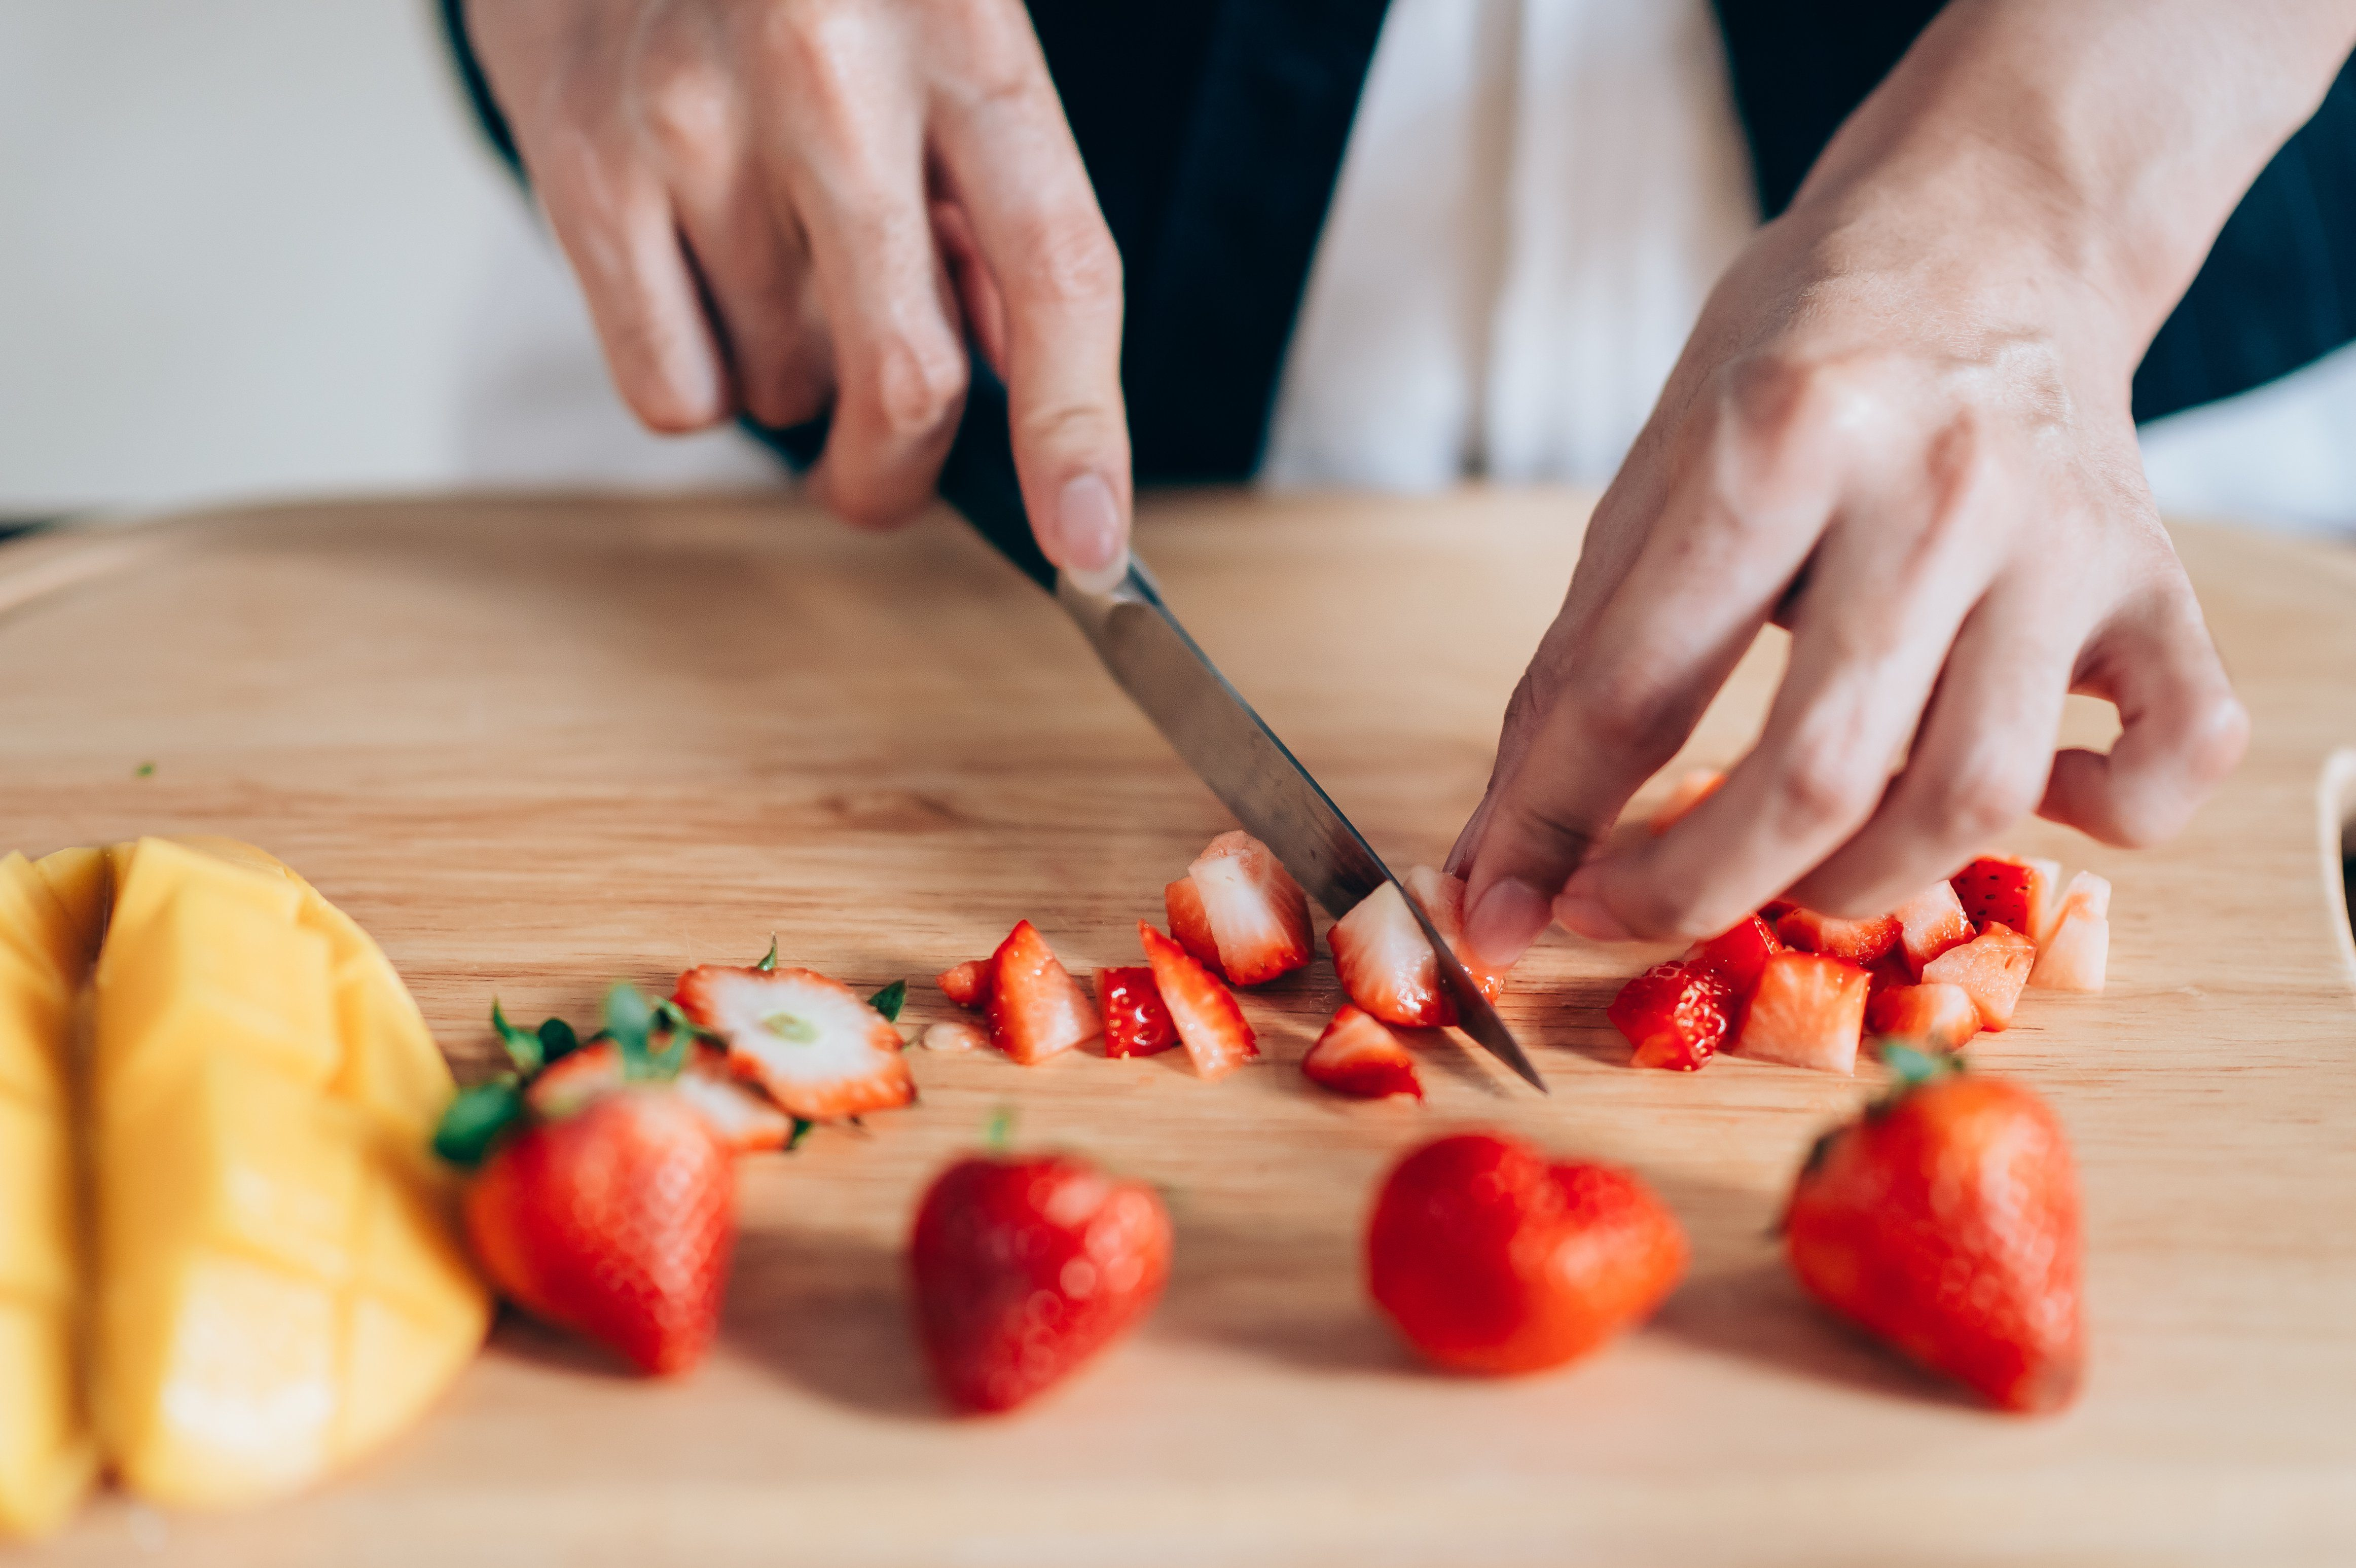 Chef Hand and Knife Slicing Fresh strawberry on wooden cutting board.